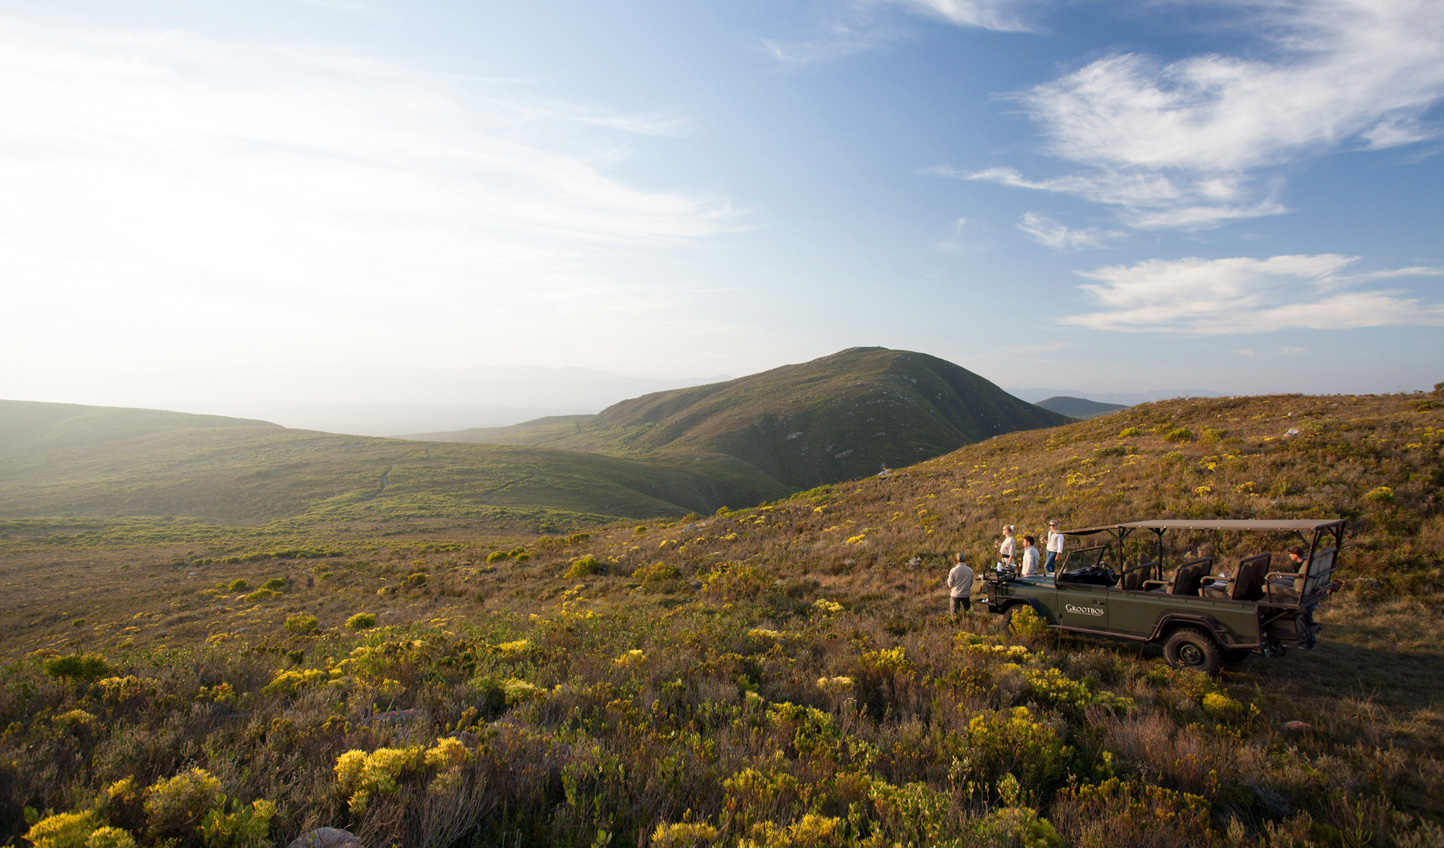 Head out over the hills on a Grootbos safari